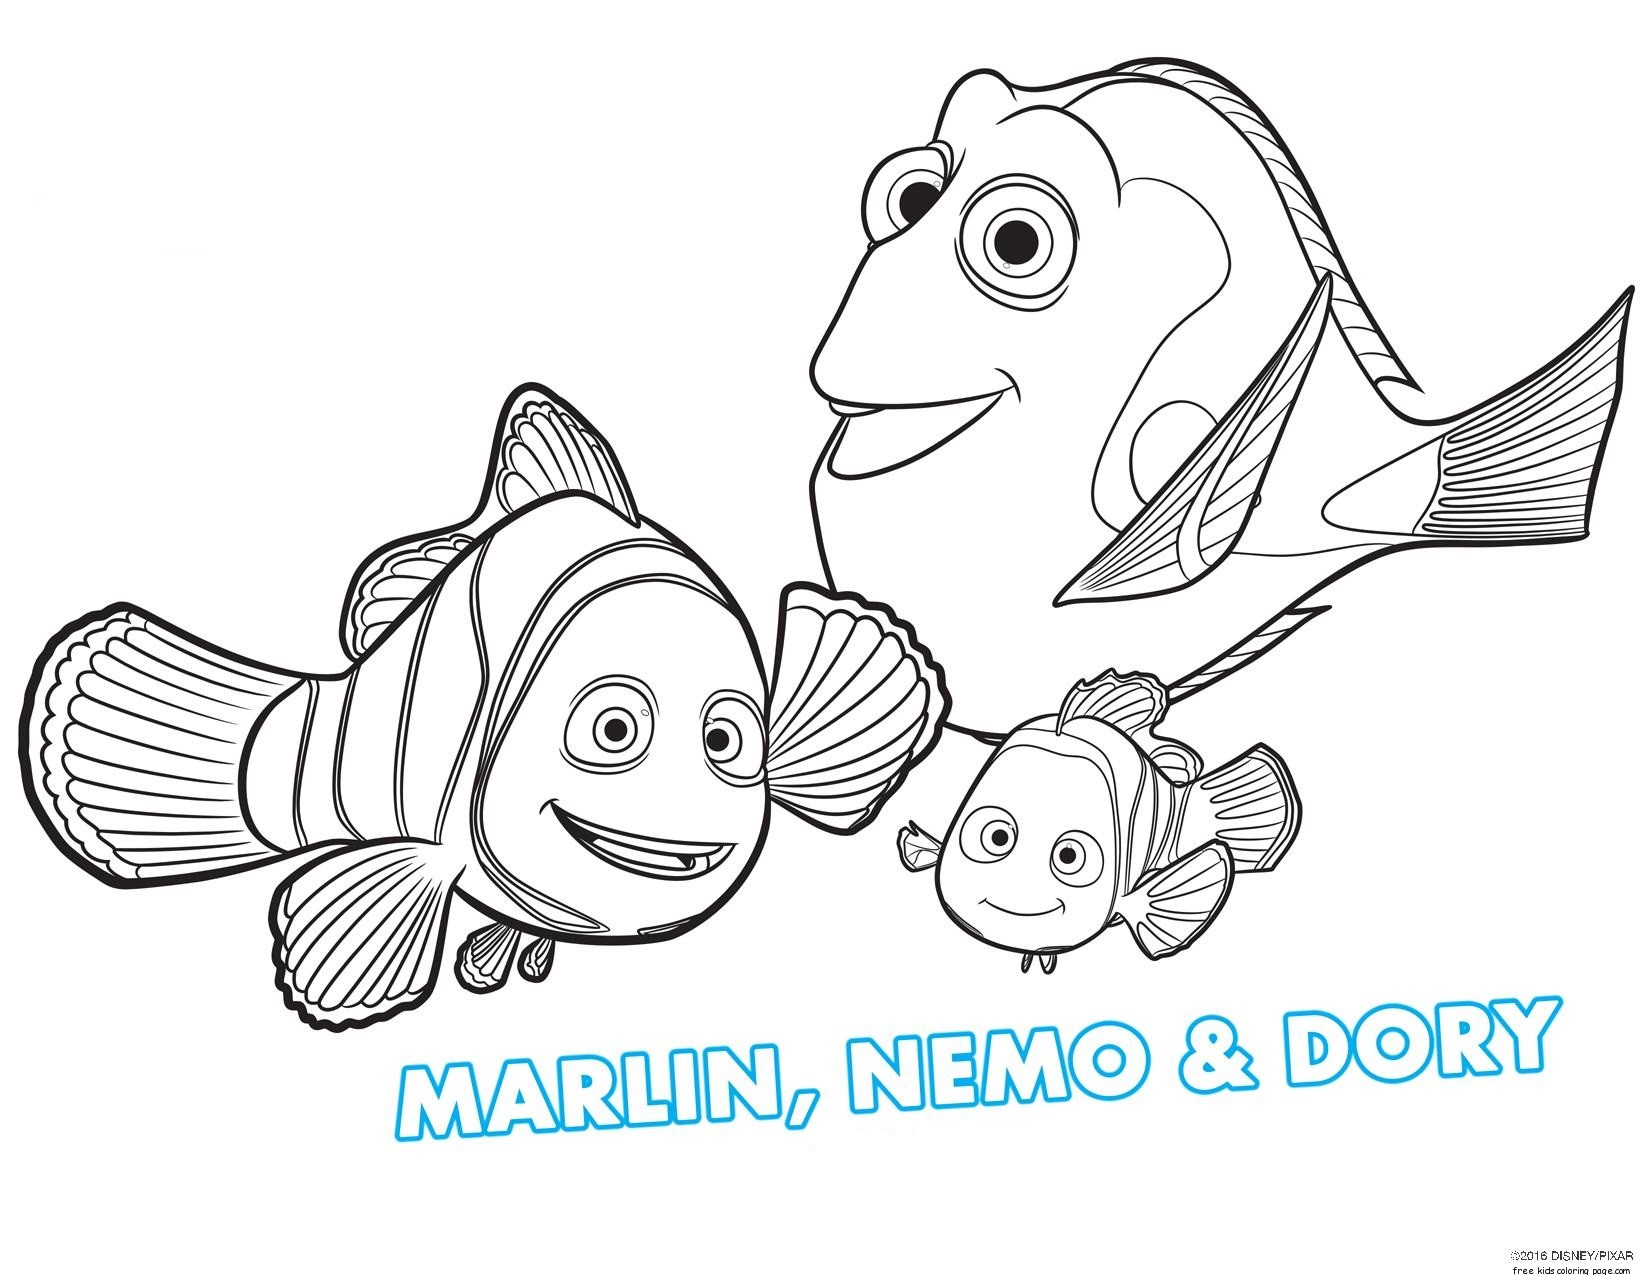 Free Printable Finding Dory Coloring Page For Kidsfree Printable Coloring Pages For Kids